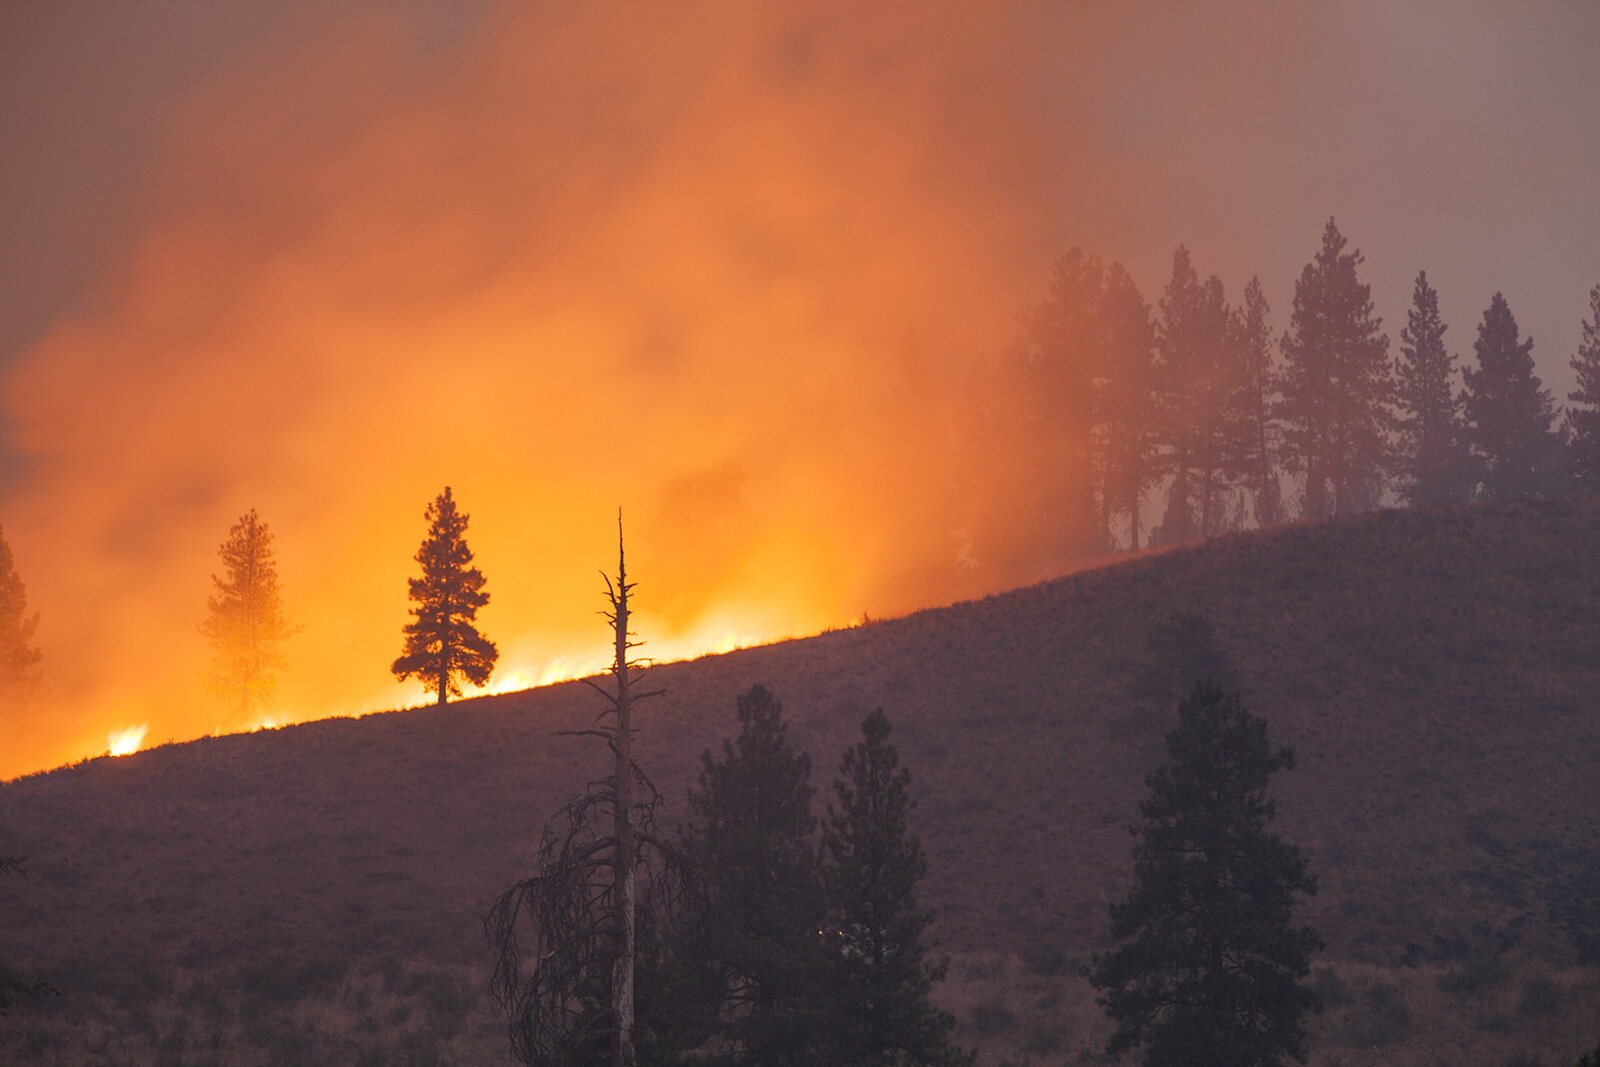 Contact your Legislators to Share Your Support for Dedicated Wildfire Funding